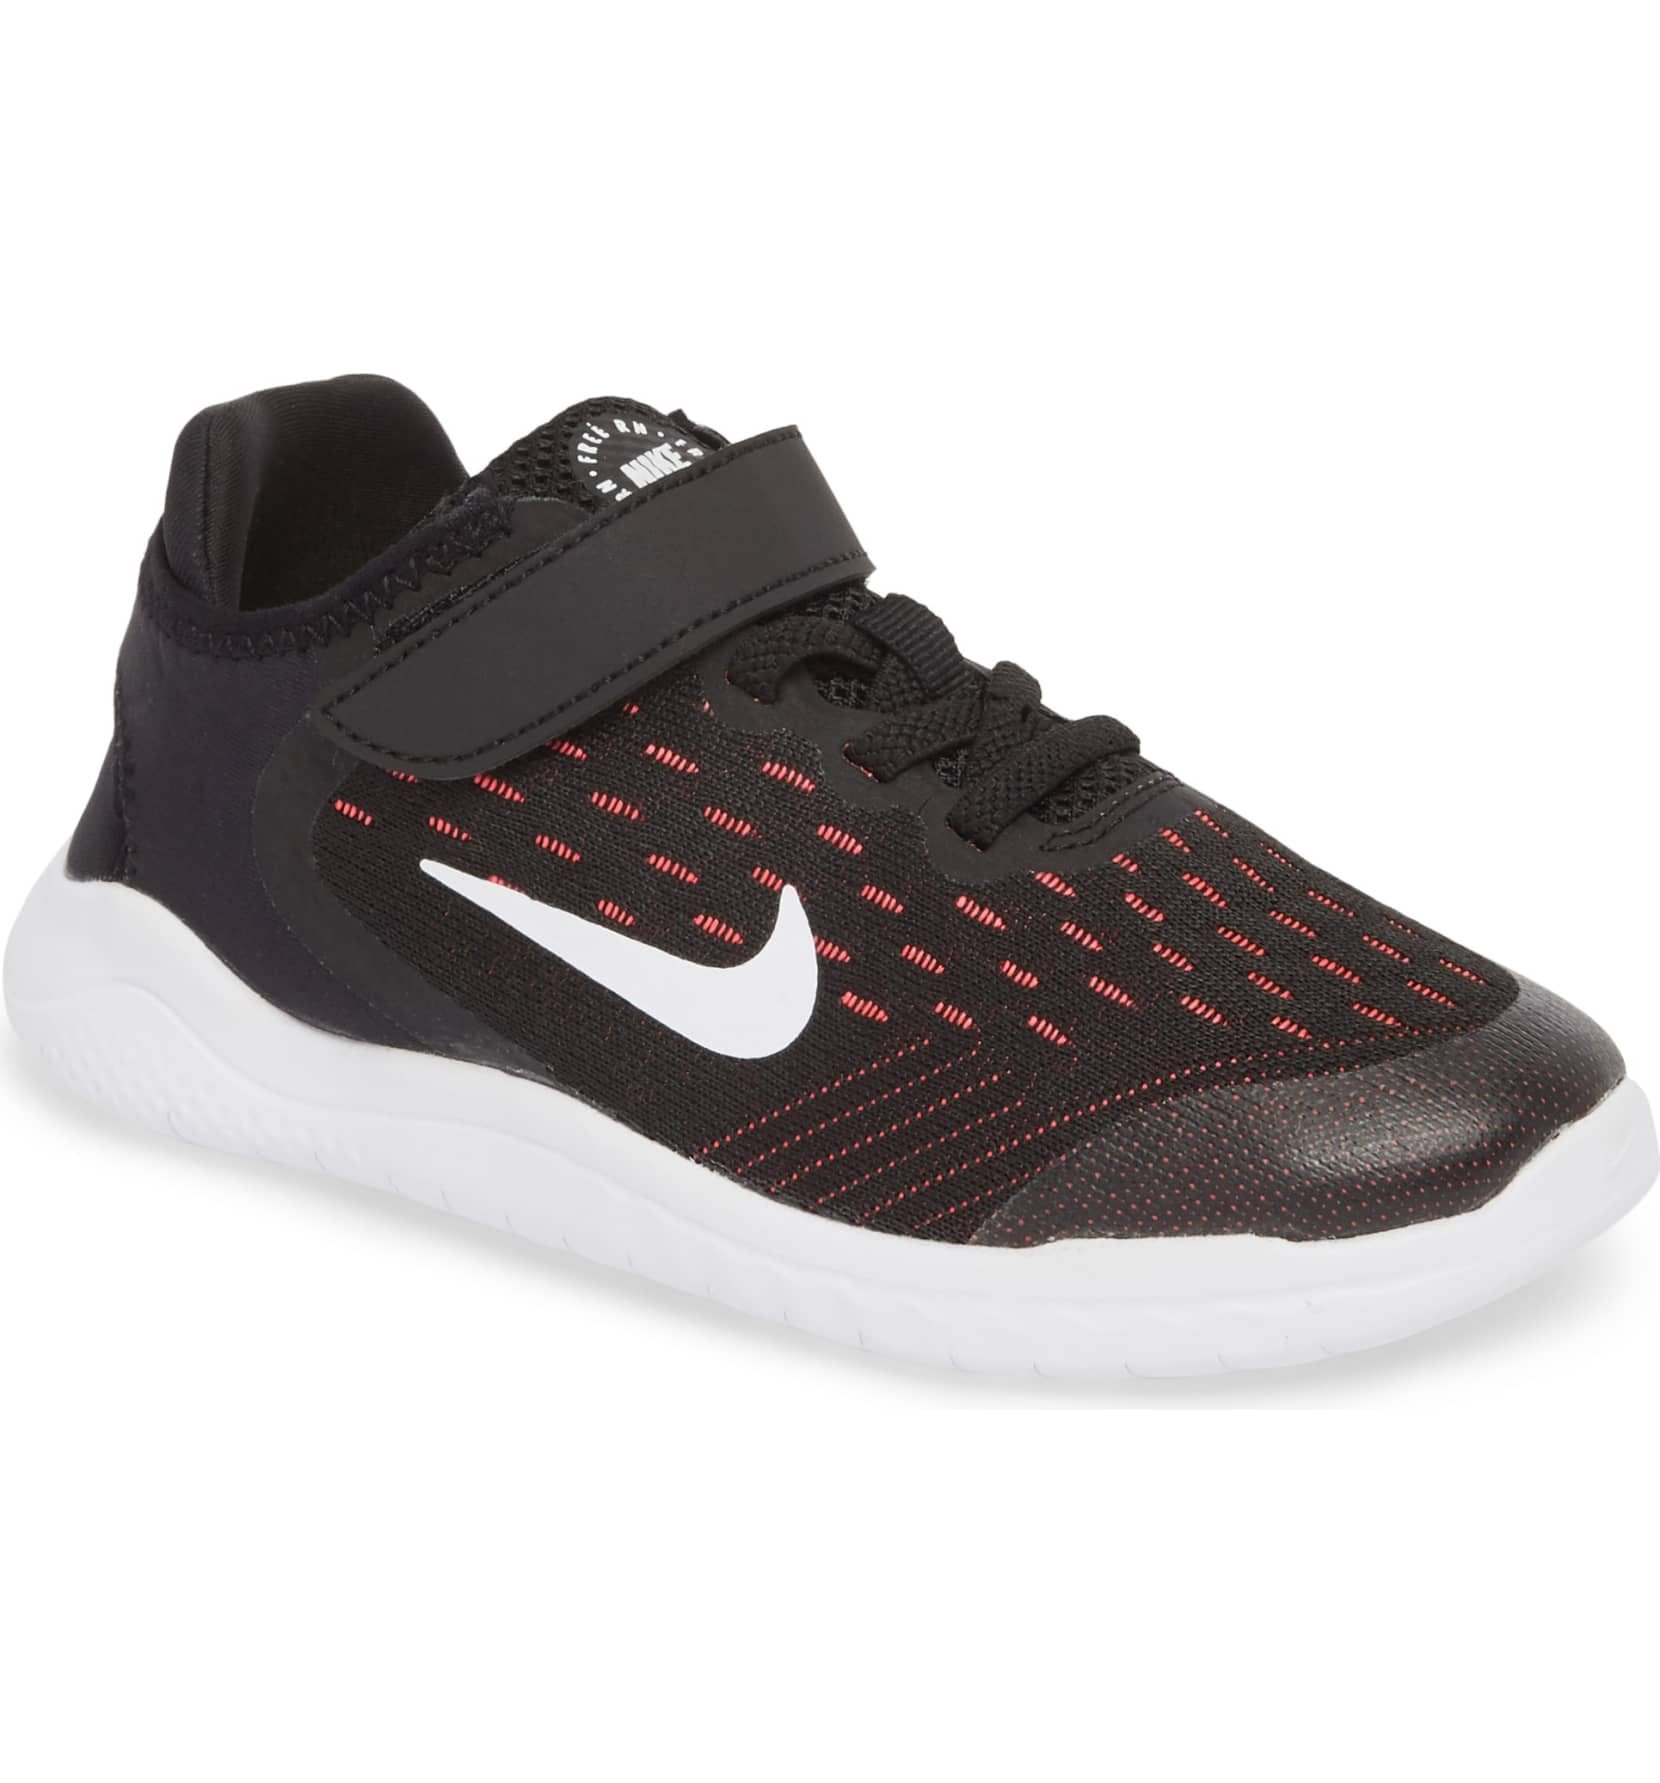 debcab8990e70 Nordstrom  Kids  Nike Free RN Running Shoes – only  26 (reg  65) Shipped!